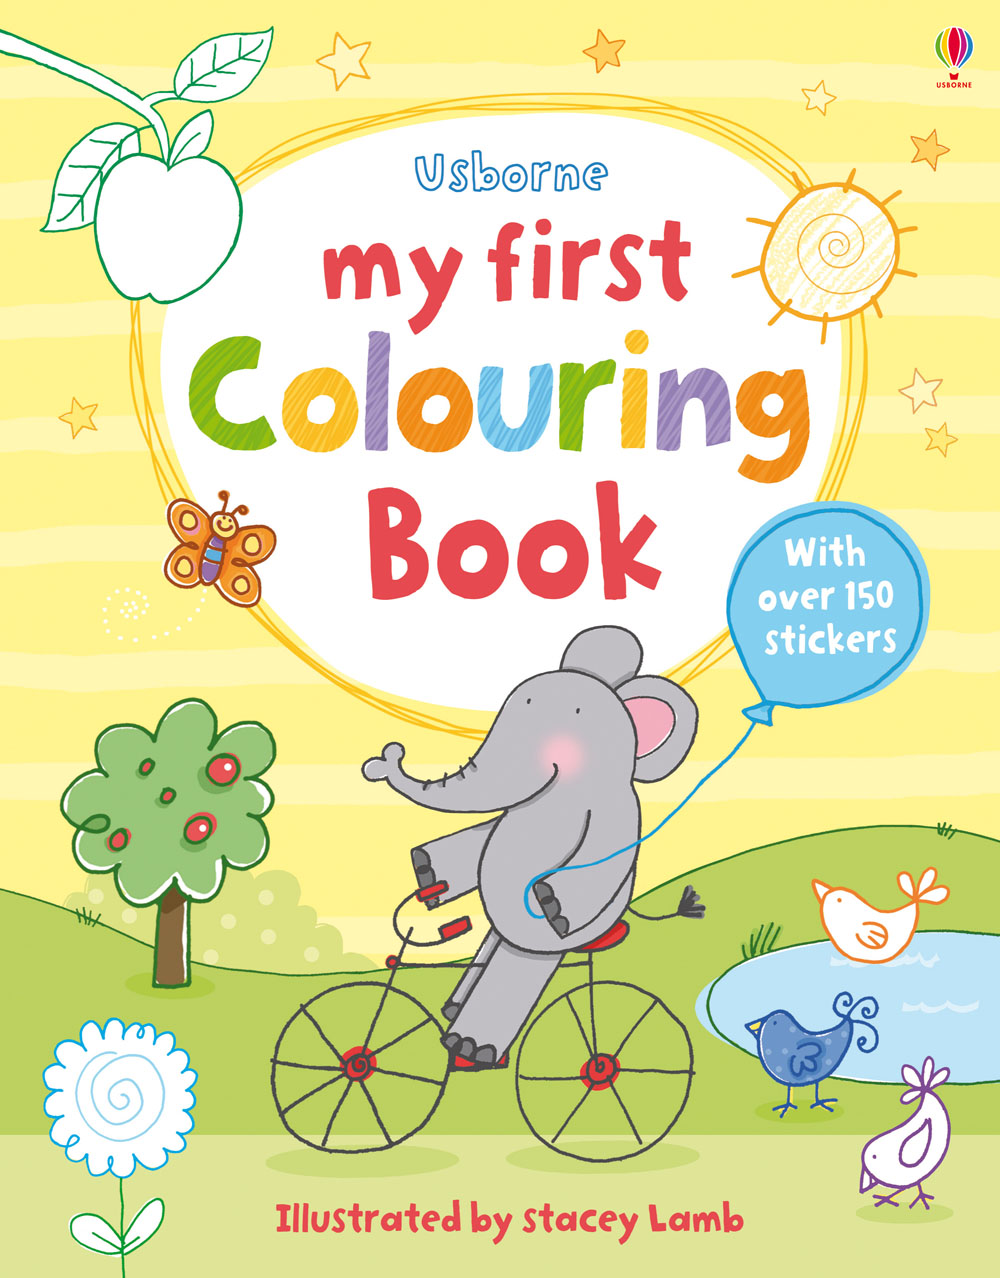 Beautiful Physiology Coloring Book Big Doodle Coloring Book Flat Alphabet Coloring Book The Big Coloring Book Of S Old Paisley Designs Coloring Book YellowWedding Coloring Book Template My First Colouring Book\u201d At Usborne Books At Home Organisers